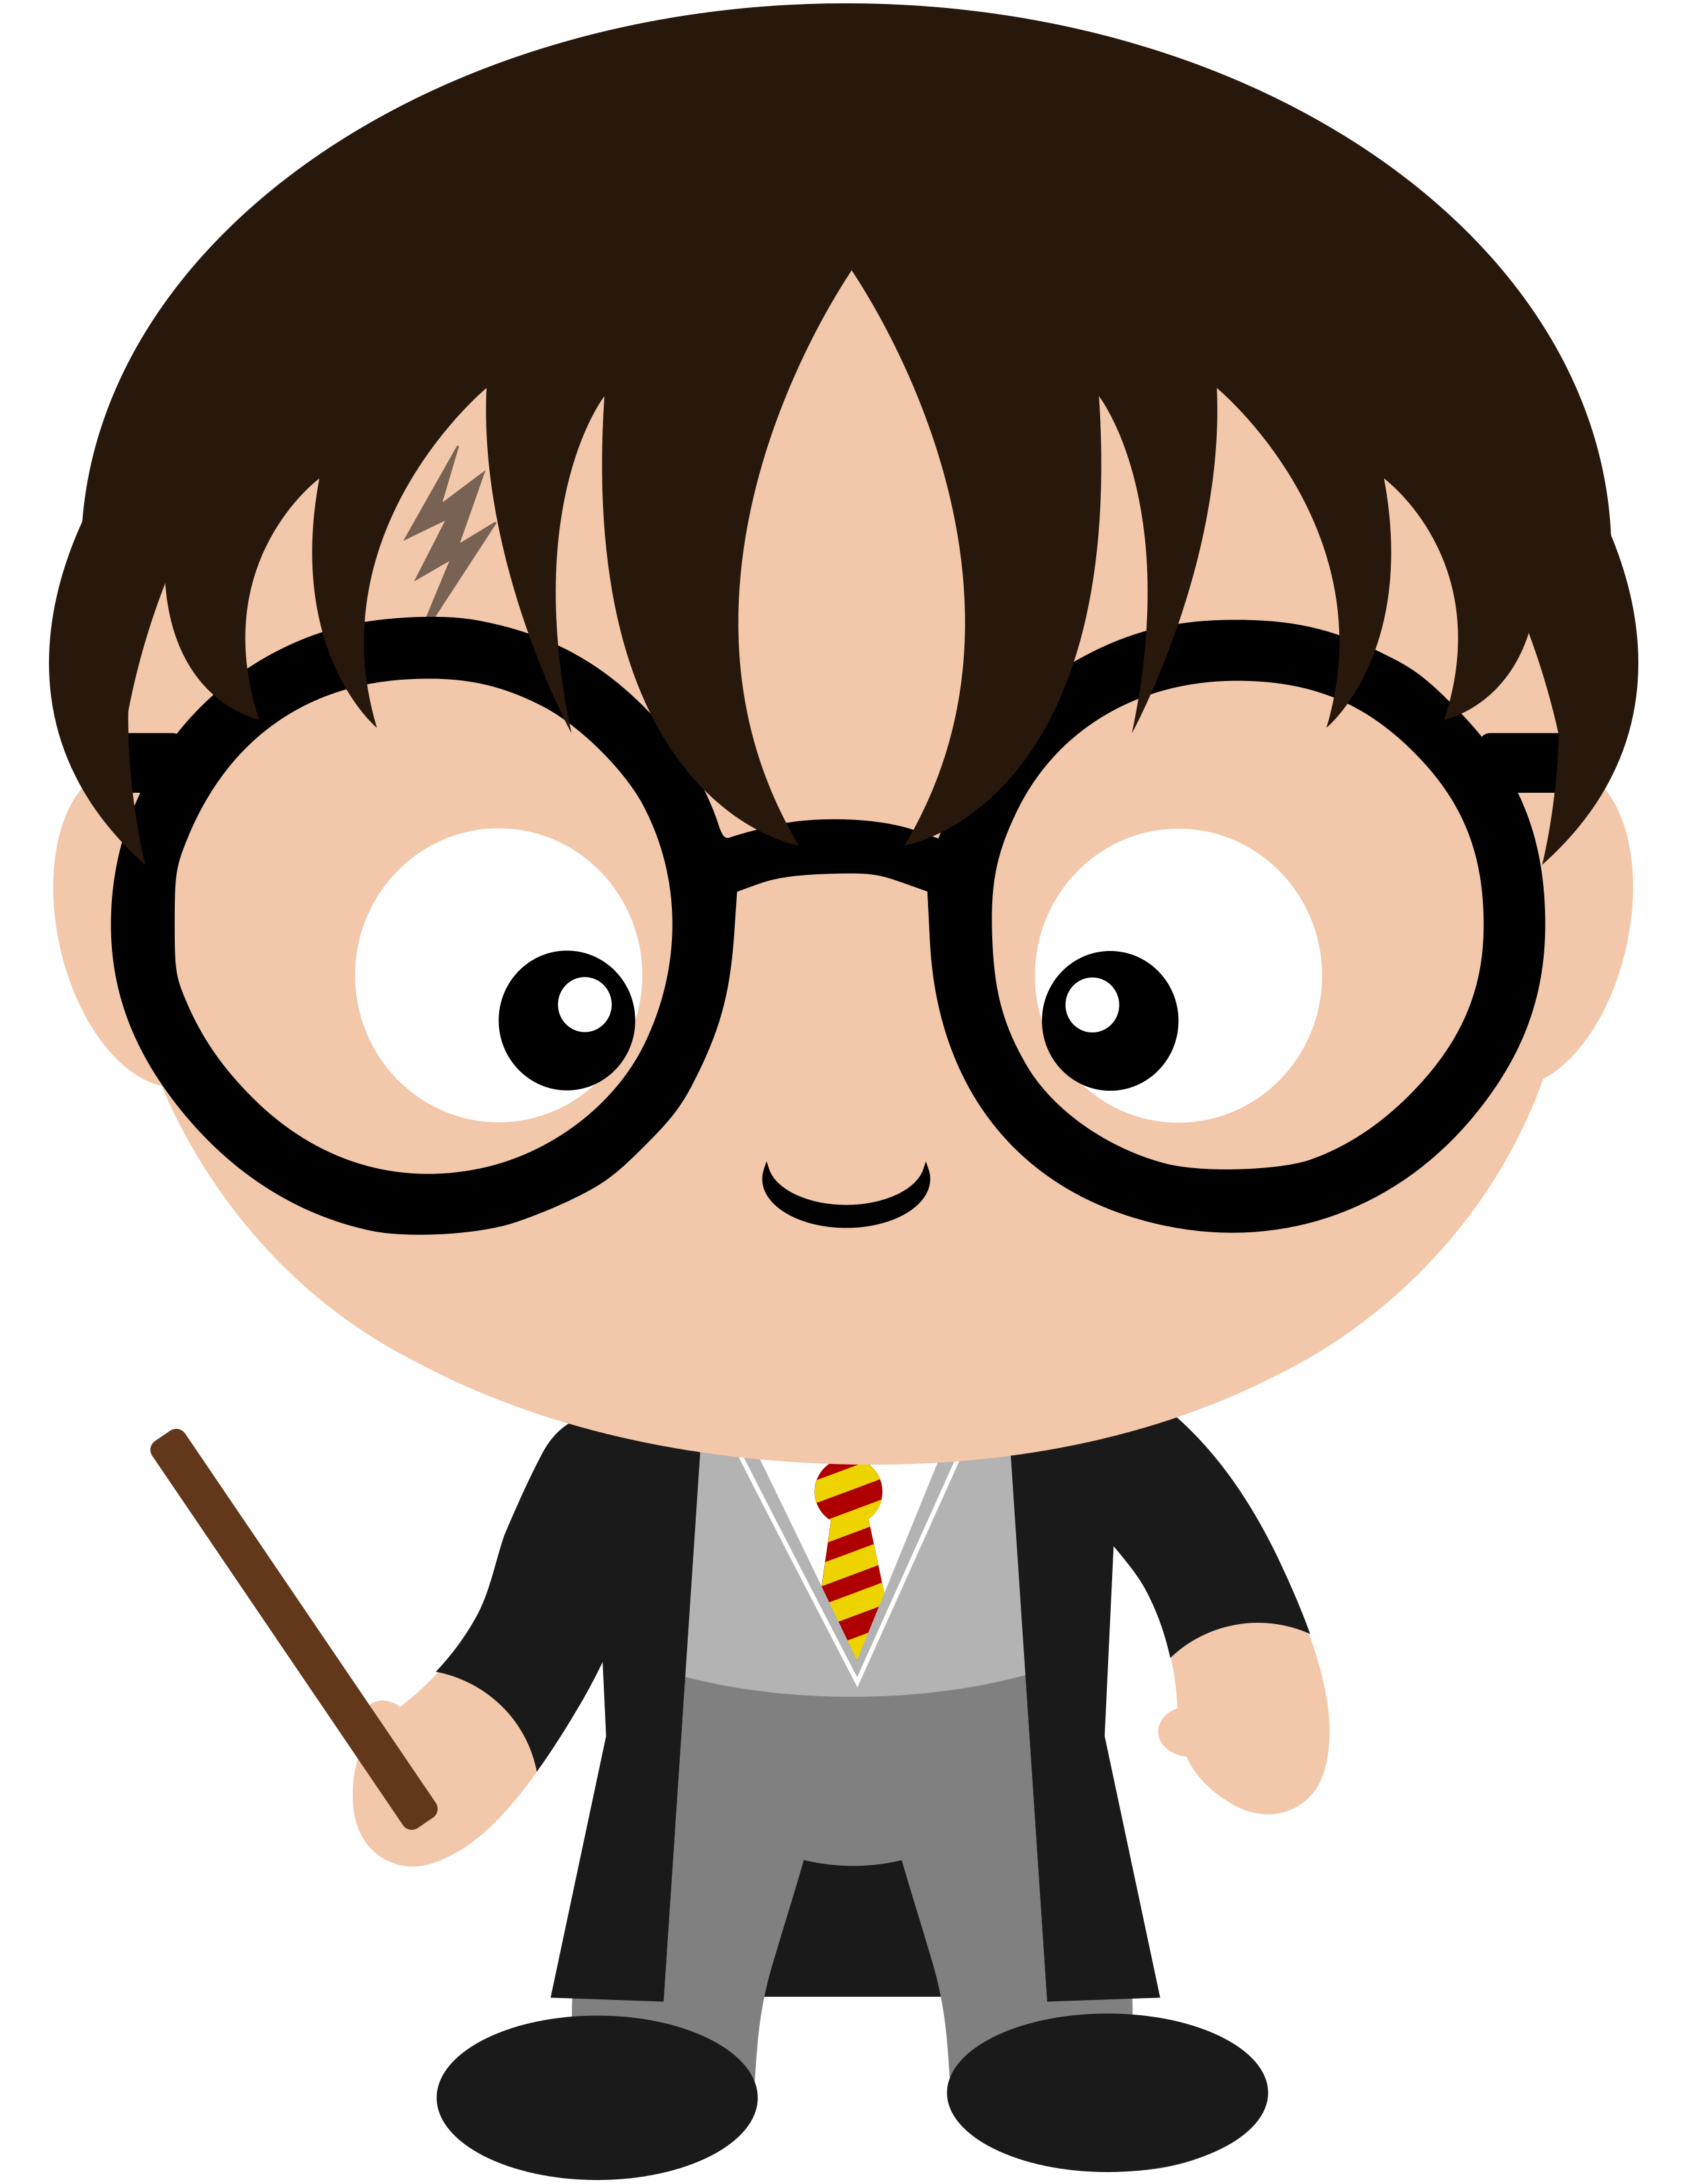 Character clipart. The one and only